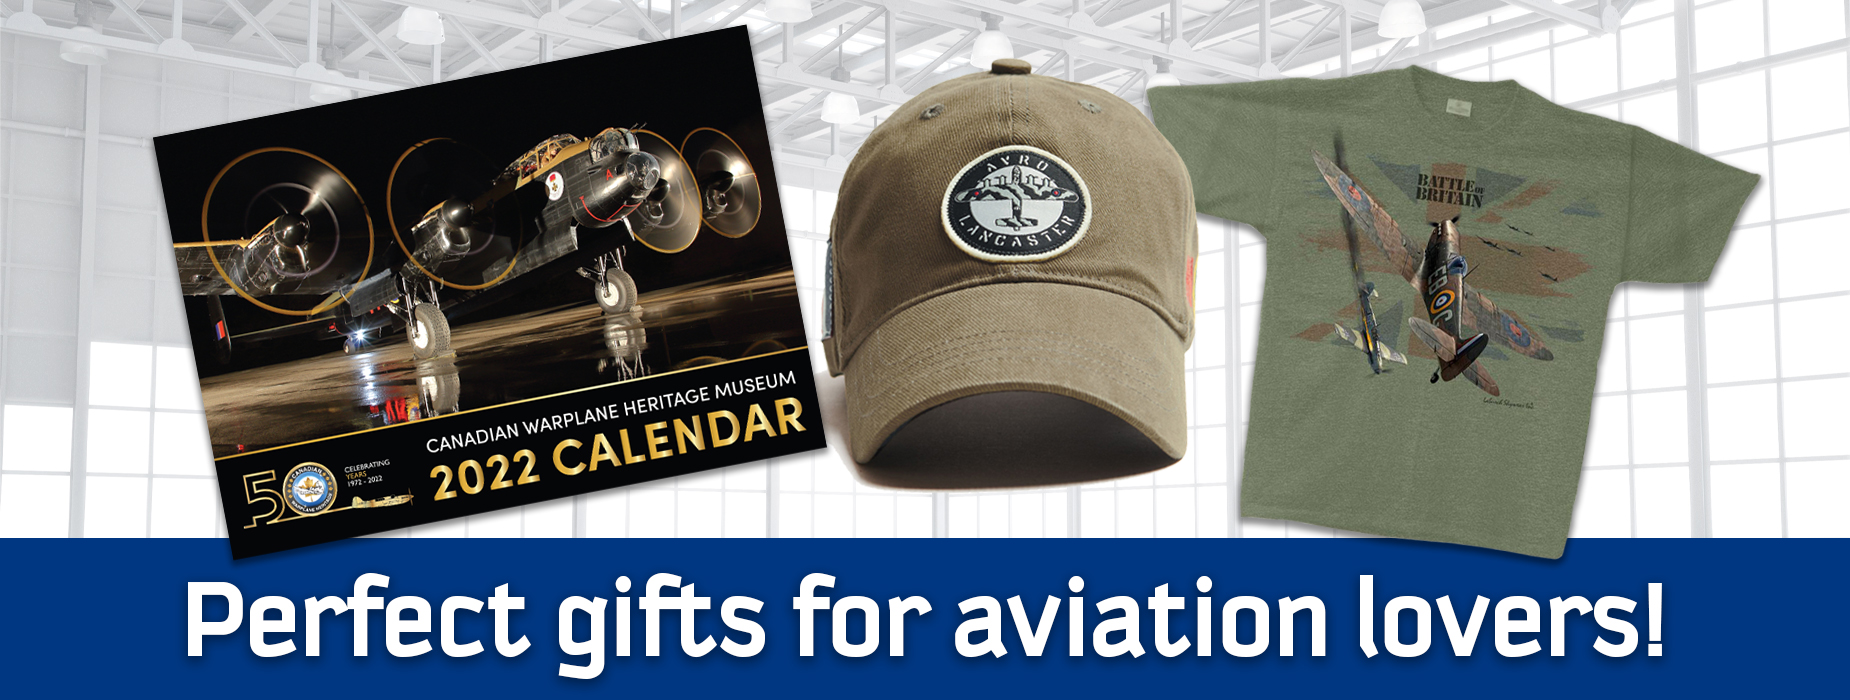 Poster for - Gifts for Aviation Lovers